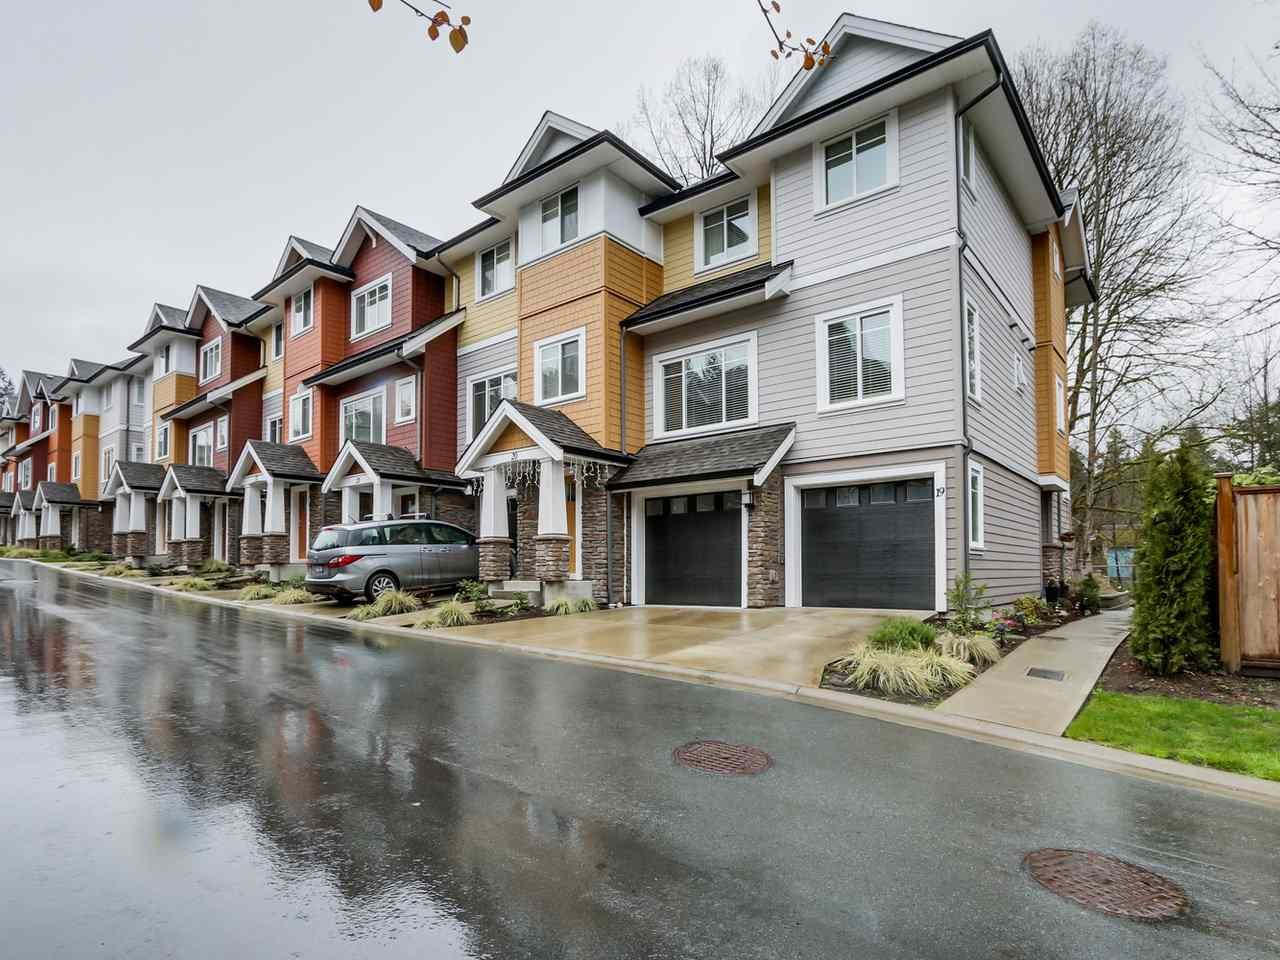 """Main Photo: 19 1219 BURKE MOUNTAIN Street in Coquitlam: Burke Mountain Townhouse for sale in """"REEF"""" : MLS®# R2059650"""